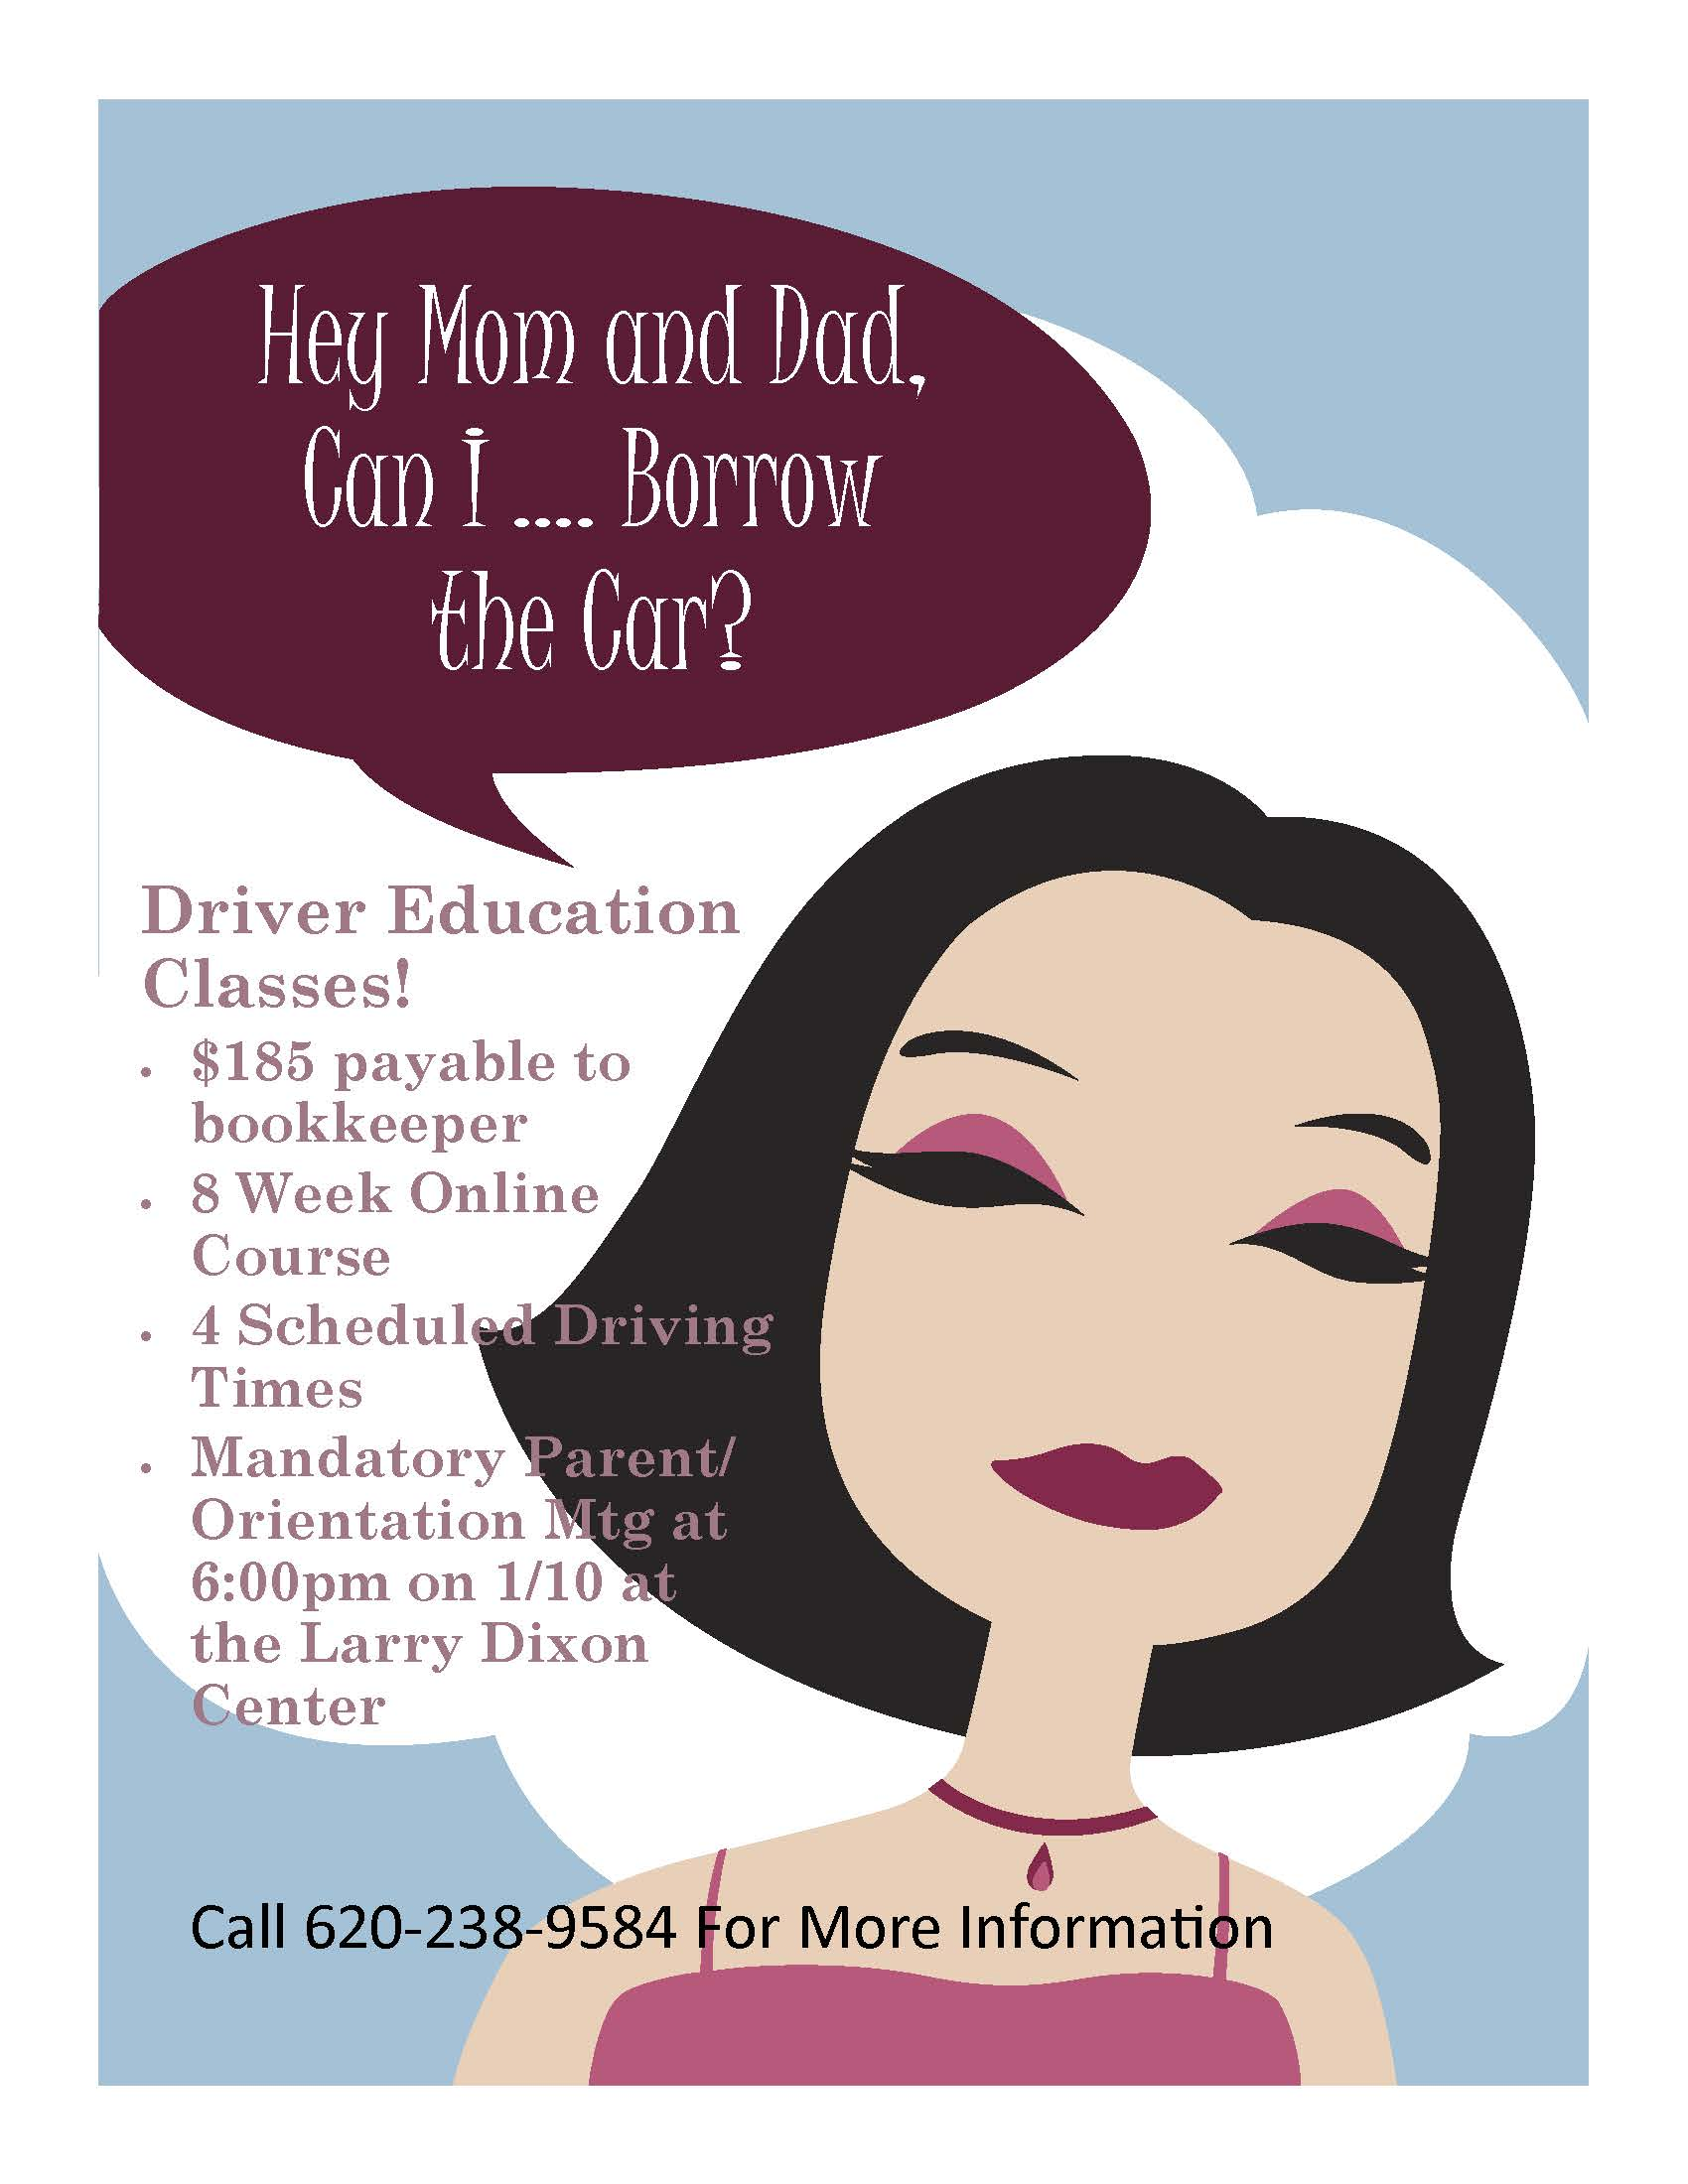 Flyer for Driver Education Classes. All information is available above.